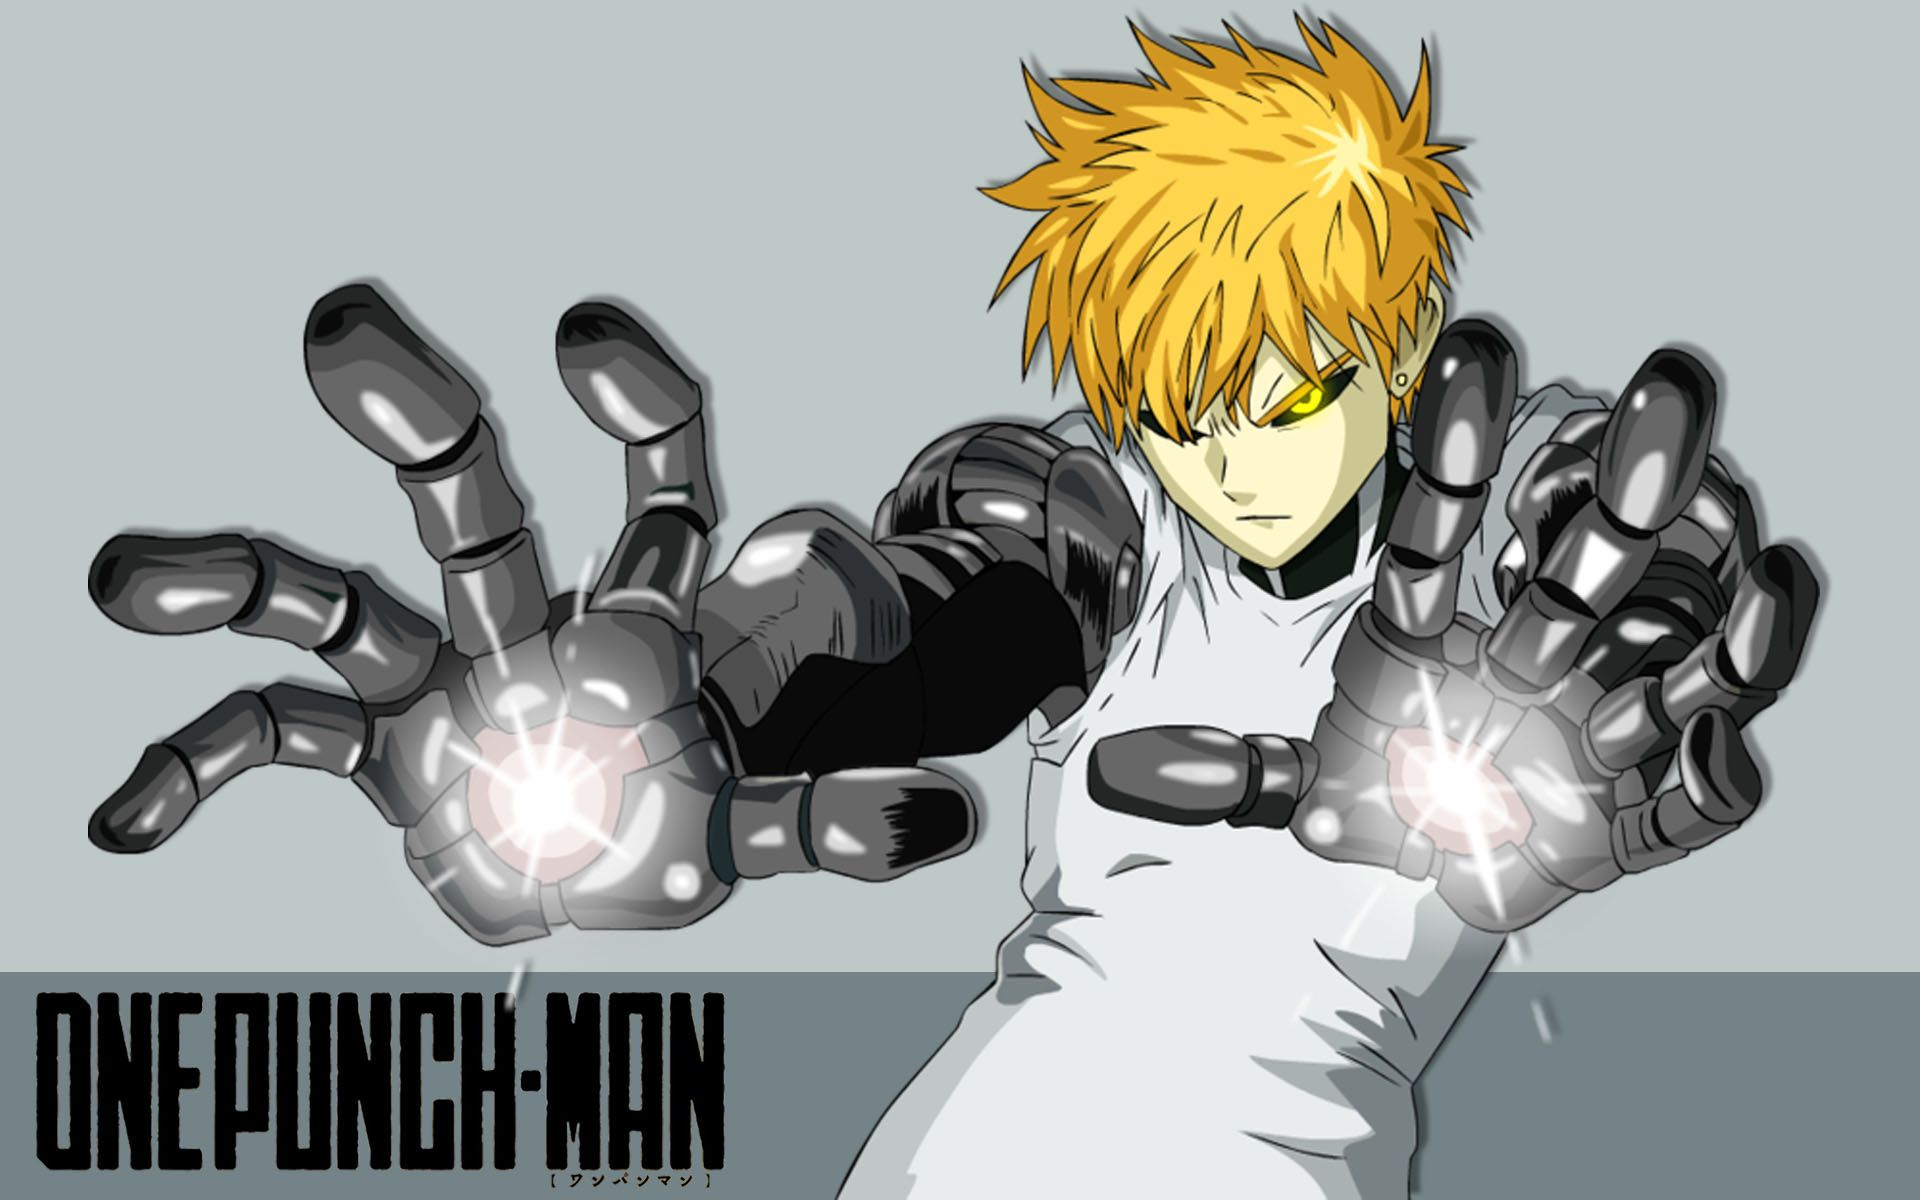 Hd wallpaper one punch man - Genos On Battle One Punch Man Anime Wallpaper Hd 2015